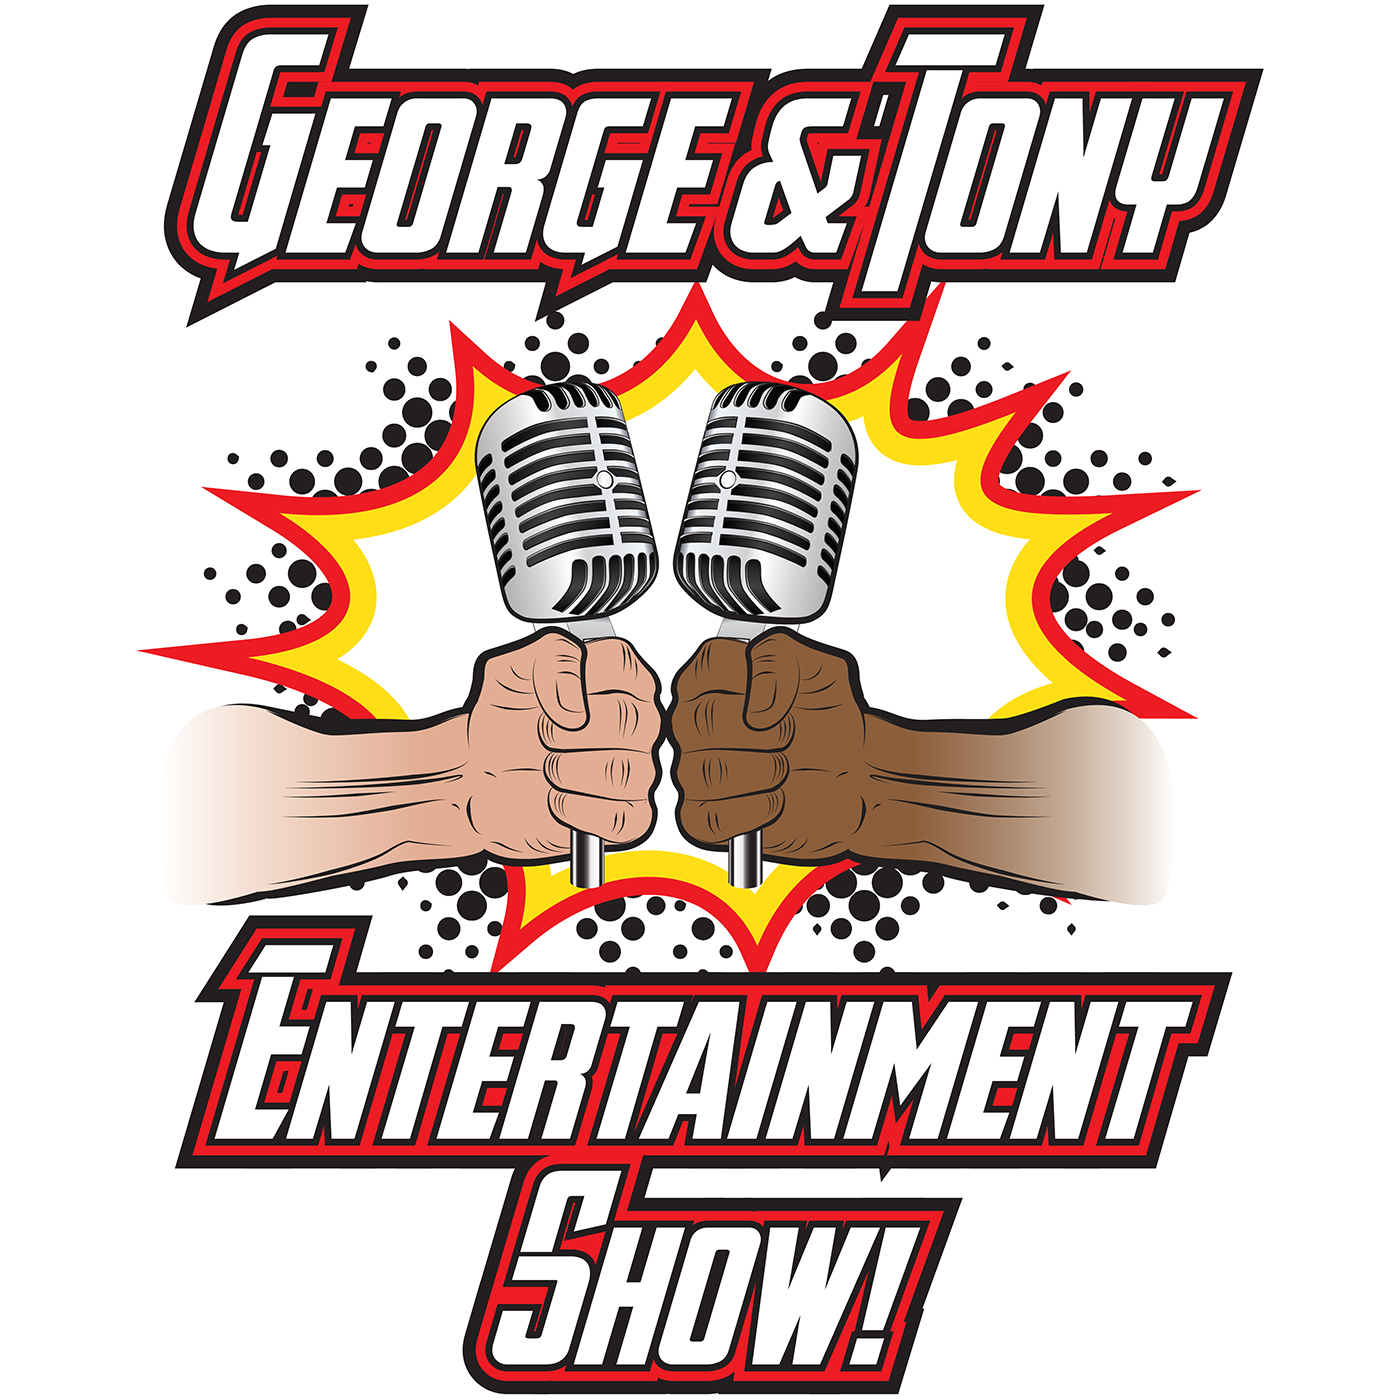 George and Tony Entertainment Show #122